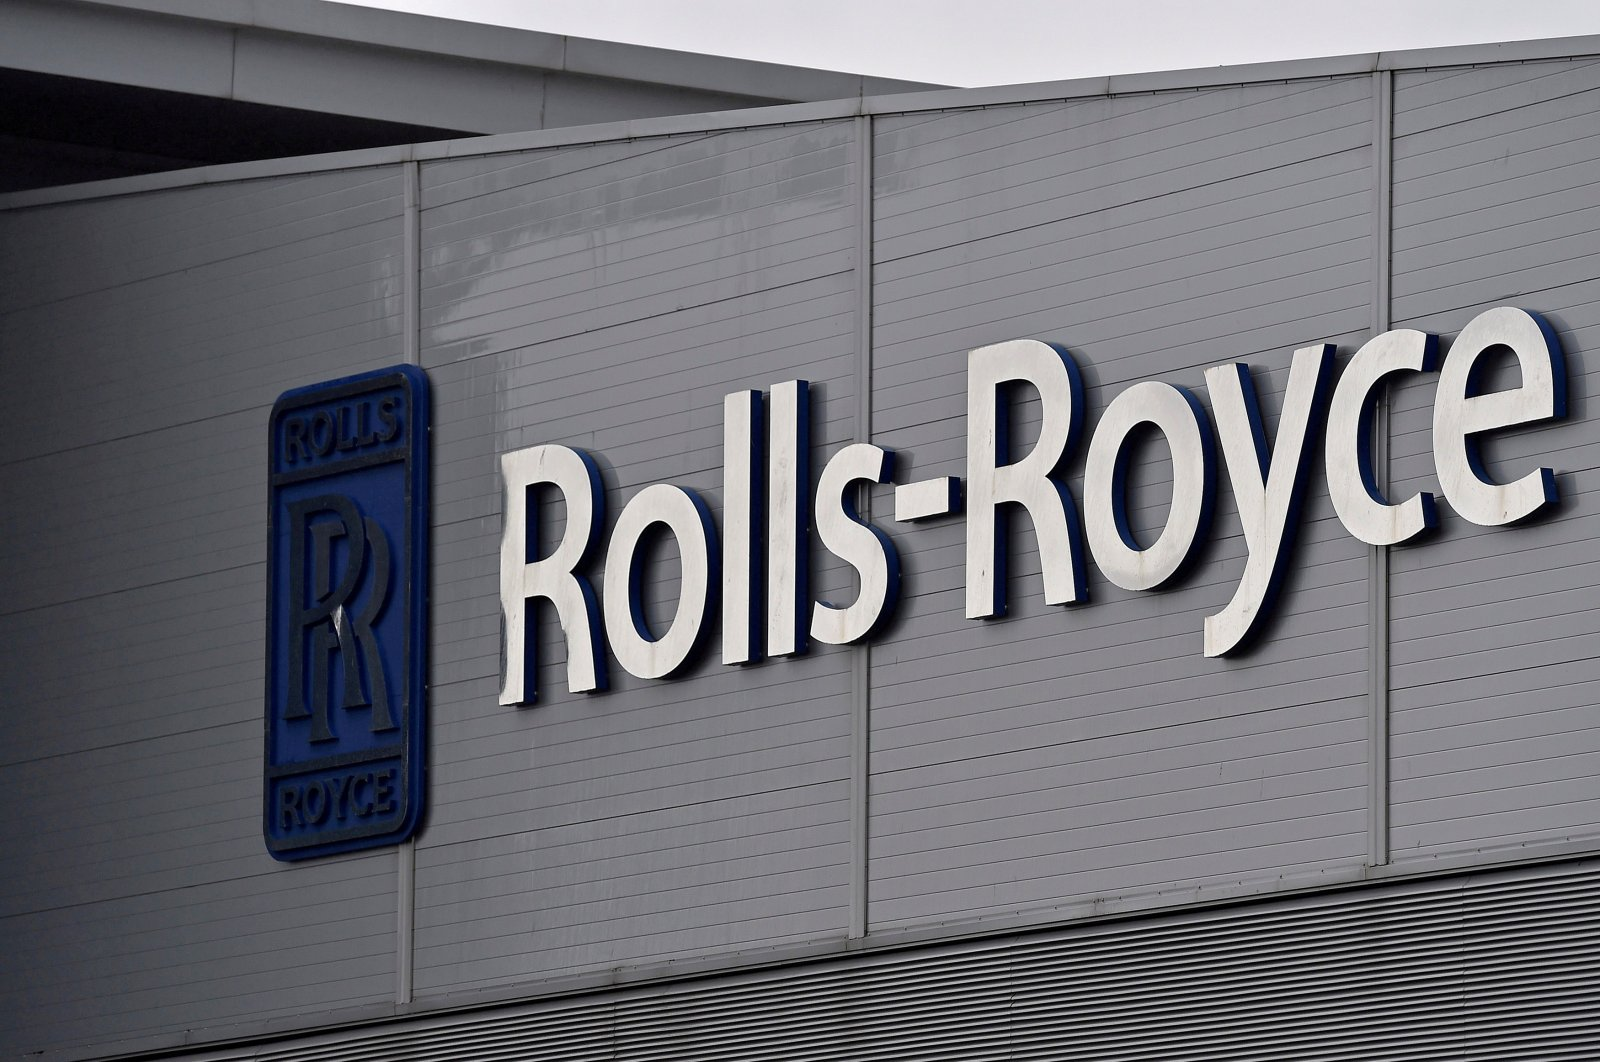 A Rolls-Royce logo hangs at the company's aerospace engineering and development site in Bristol, Britain, Dec. 17, 2015. (Reuters Photo)